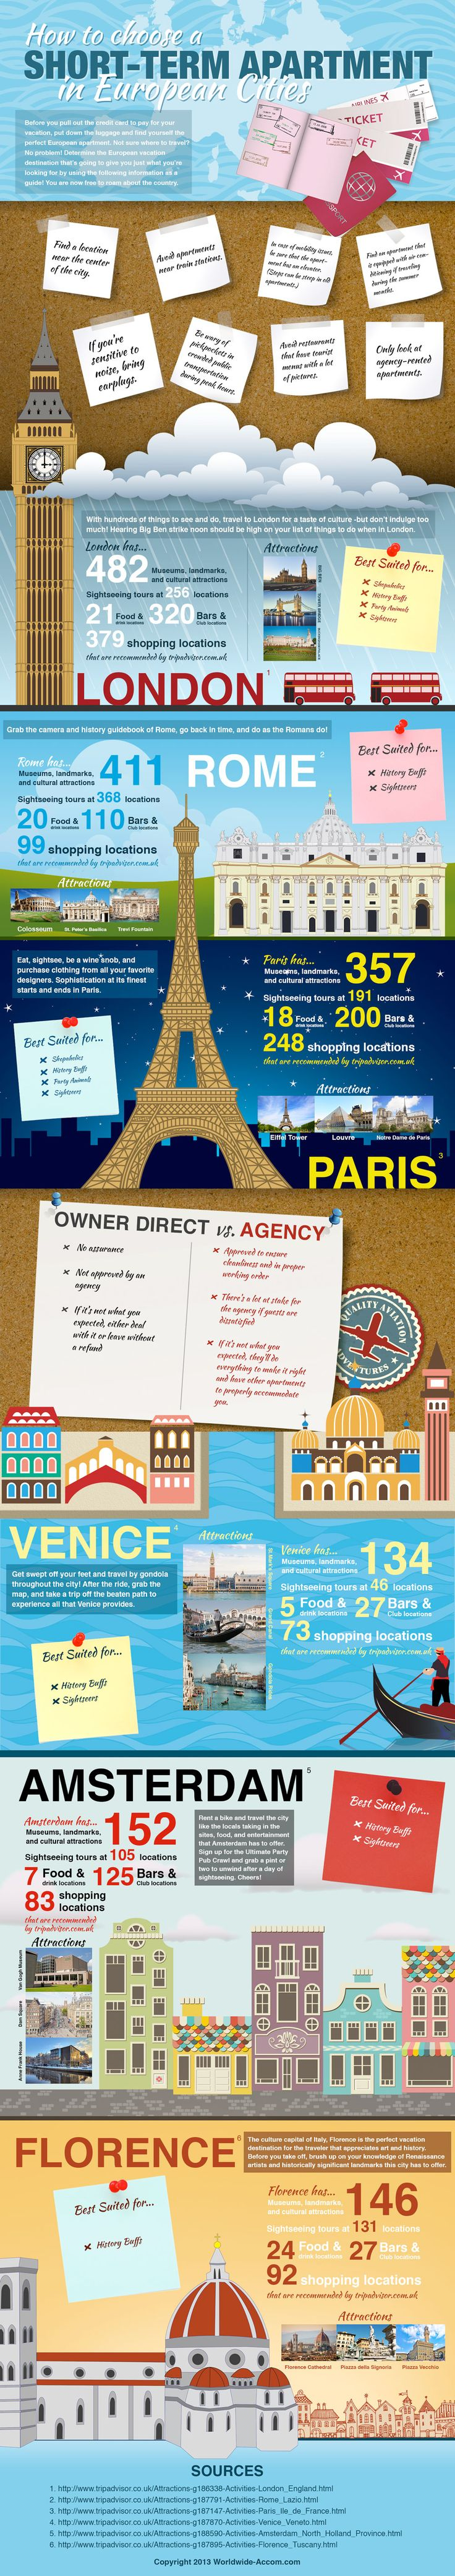 #HowTo Choose a Short-Term Apartment in European Cities [INFOGRAPHIC] | #Travel #Europe